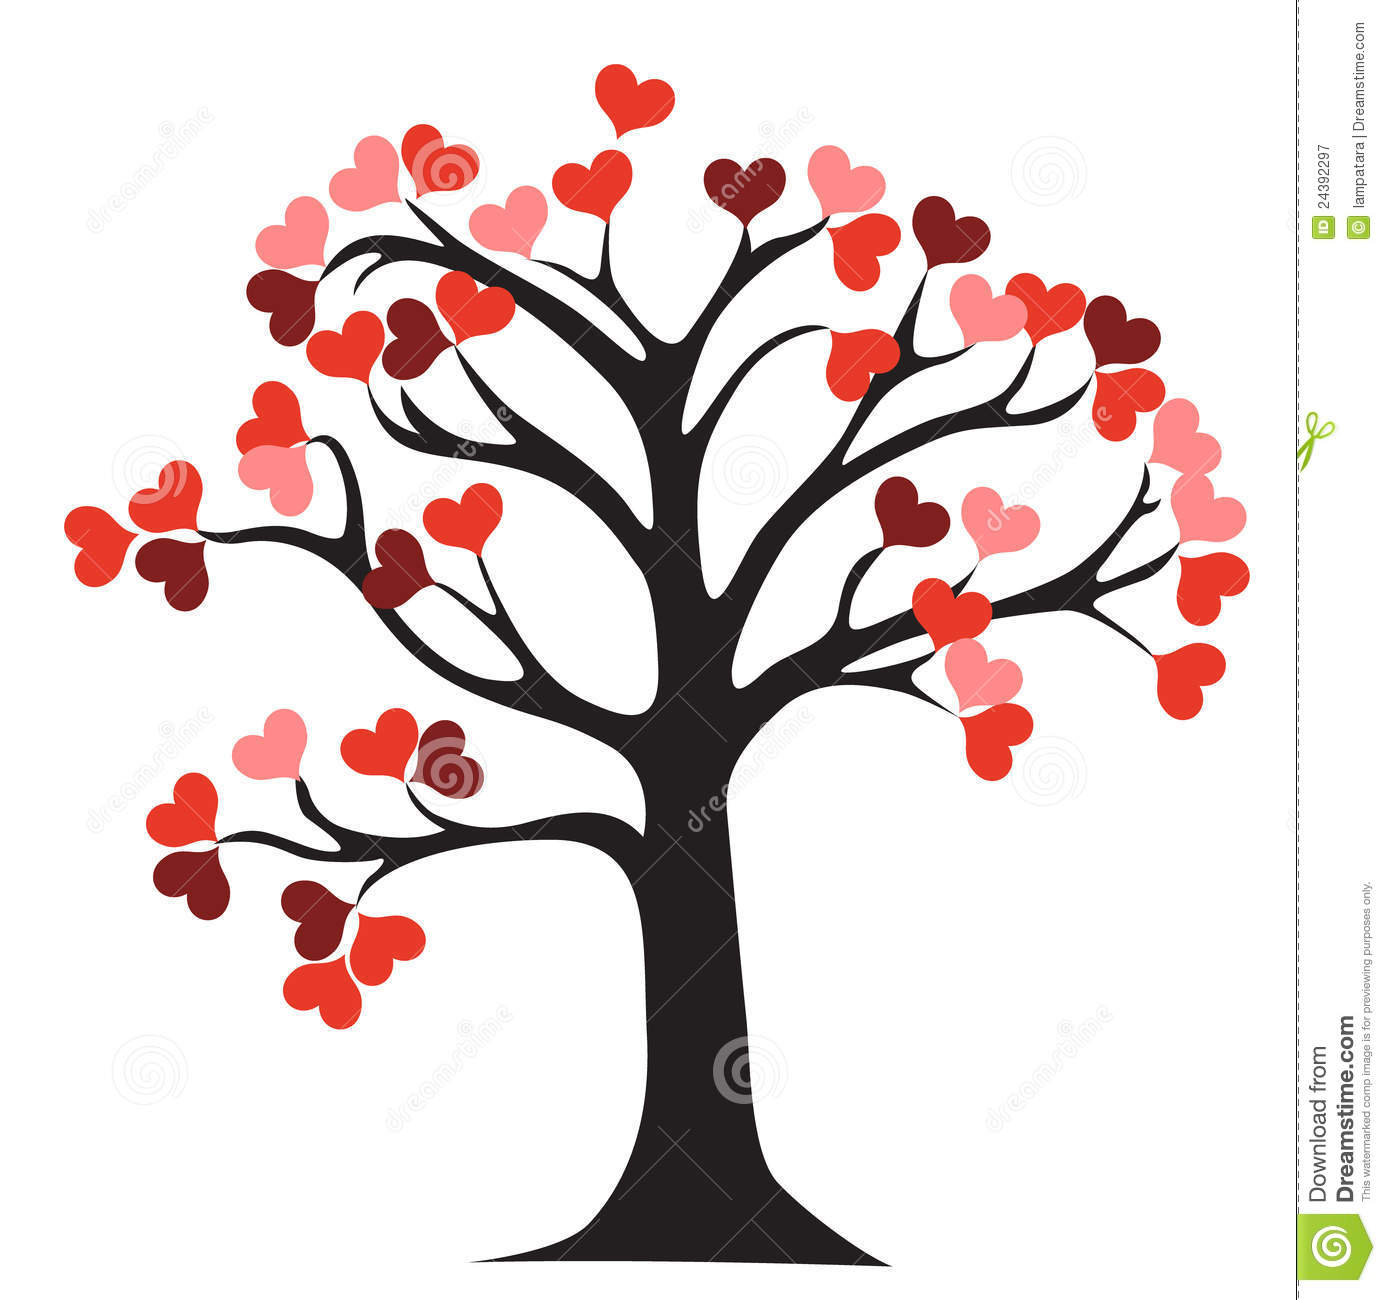 Love Tree Royalty Free Stock Photography - Image: 24392297